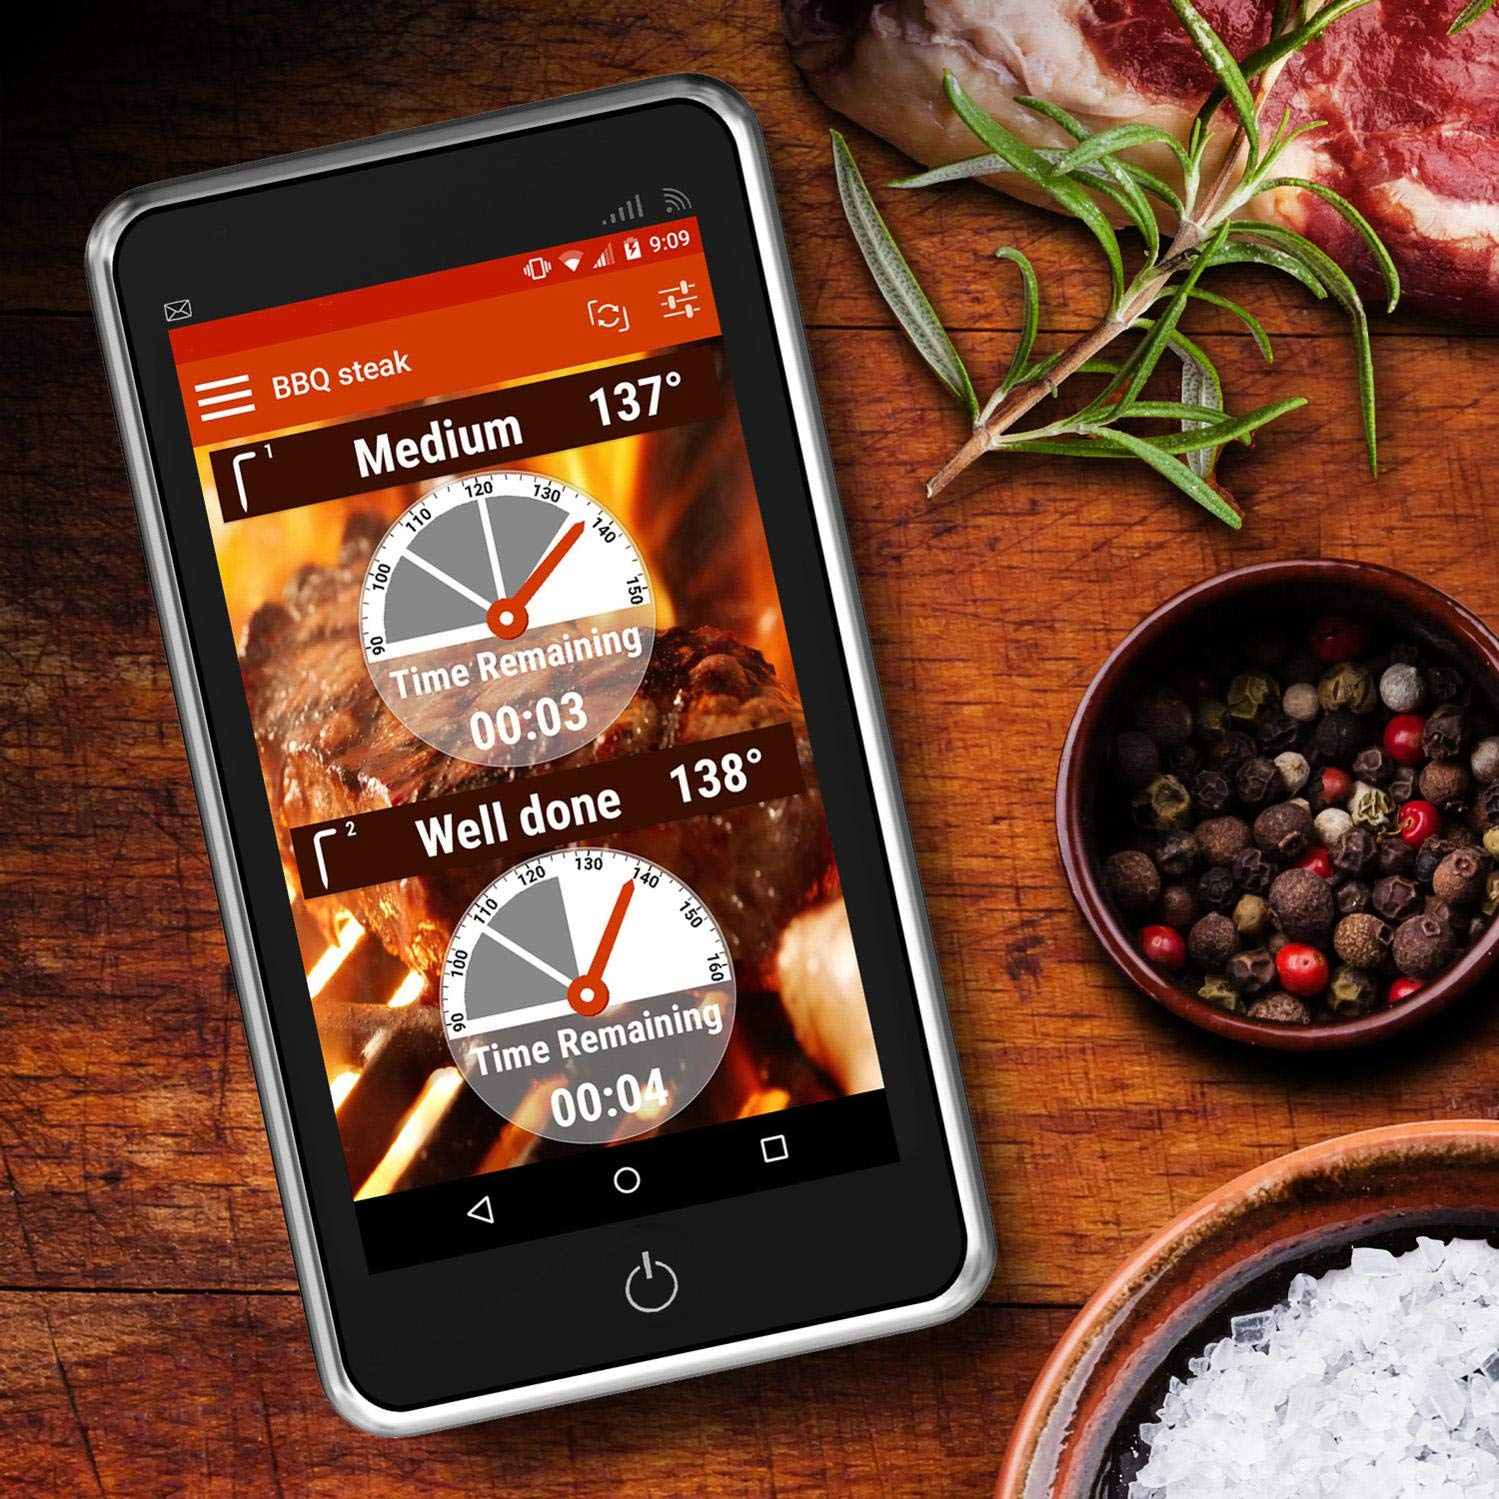 iChef ET-736 Wireless WiFi Thermometer. Dual Probe Meat Thermometer for Phones and Tablets, Android, Apple iOS and Kindle Fire Compatible. Monitors Food Within Your Wifi Network Range